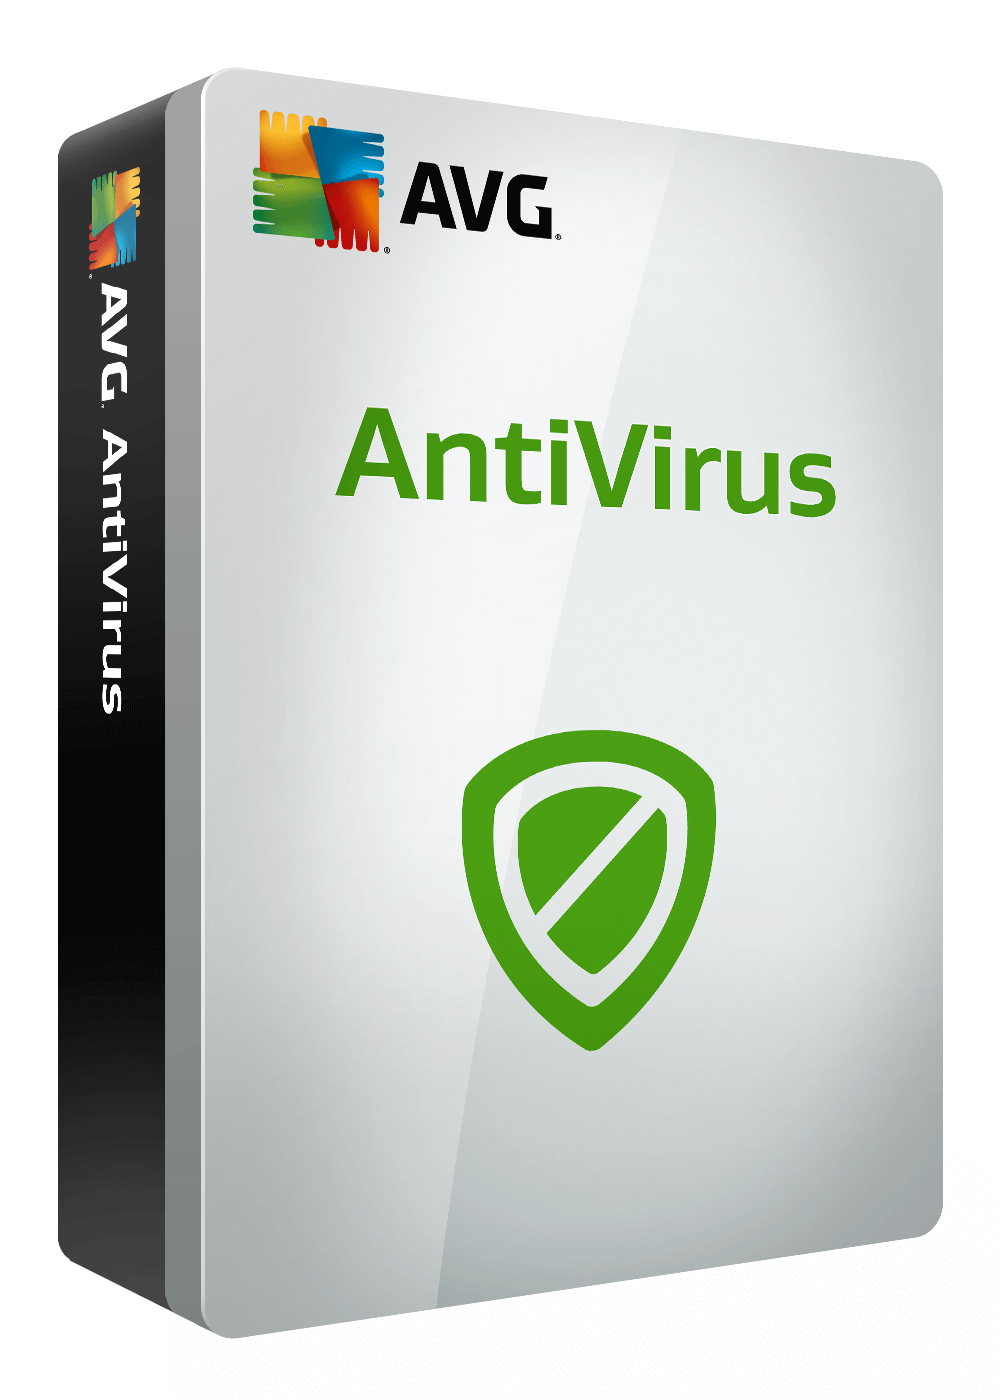 AVG Antivirus picture